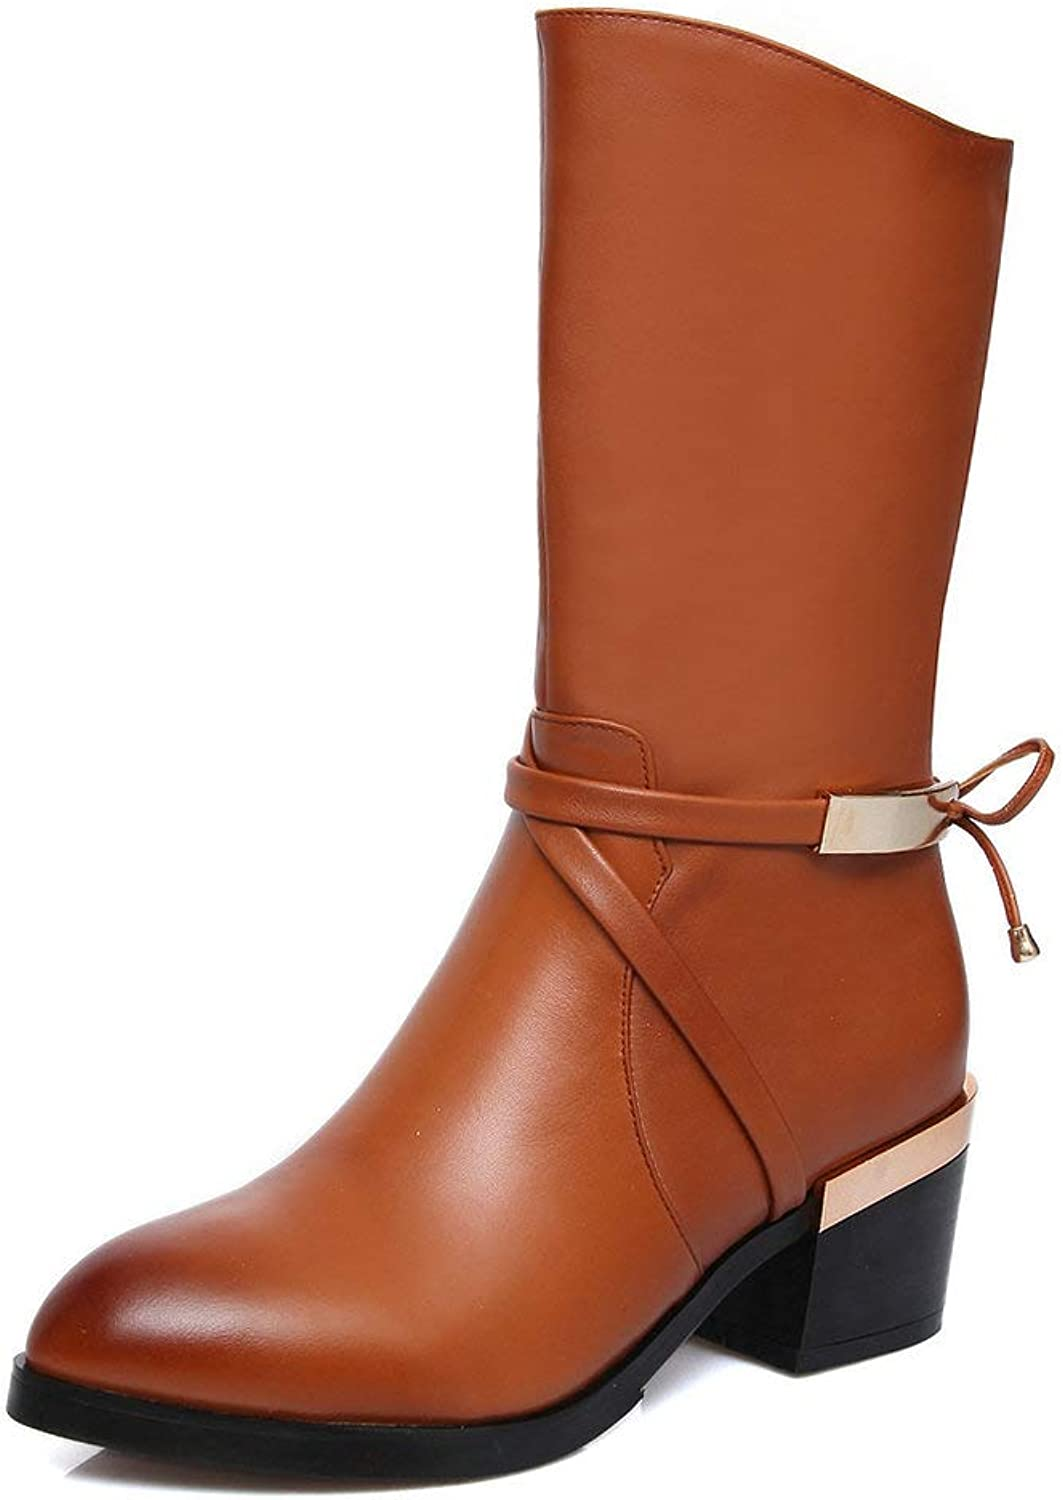 AnMengXinLing Fashion Mid Calf Boot Women Low Block Heel Genuine Leather Pointed Toe Strappy Side Zipper Western Cowboy Boots